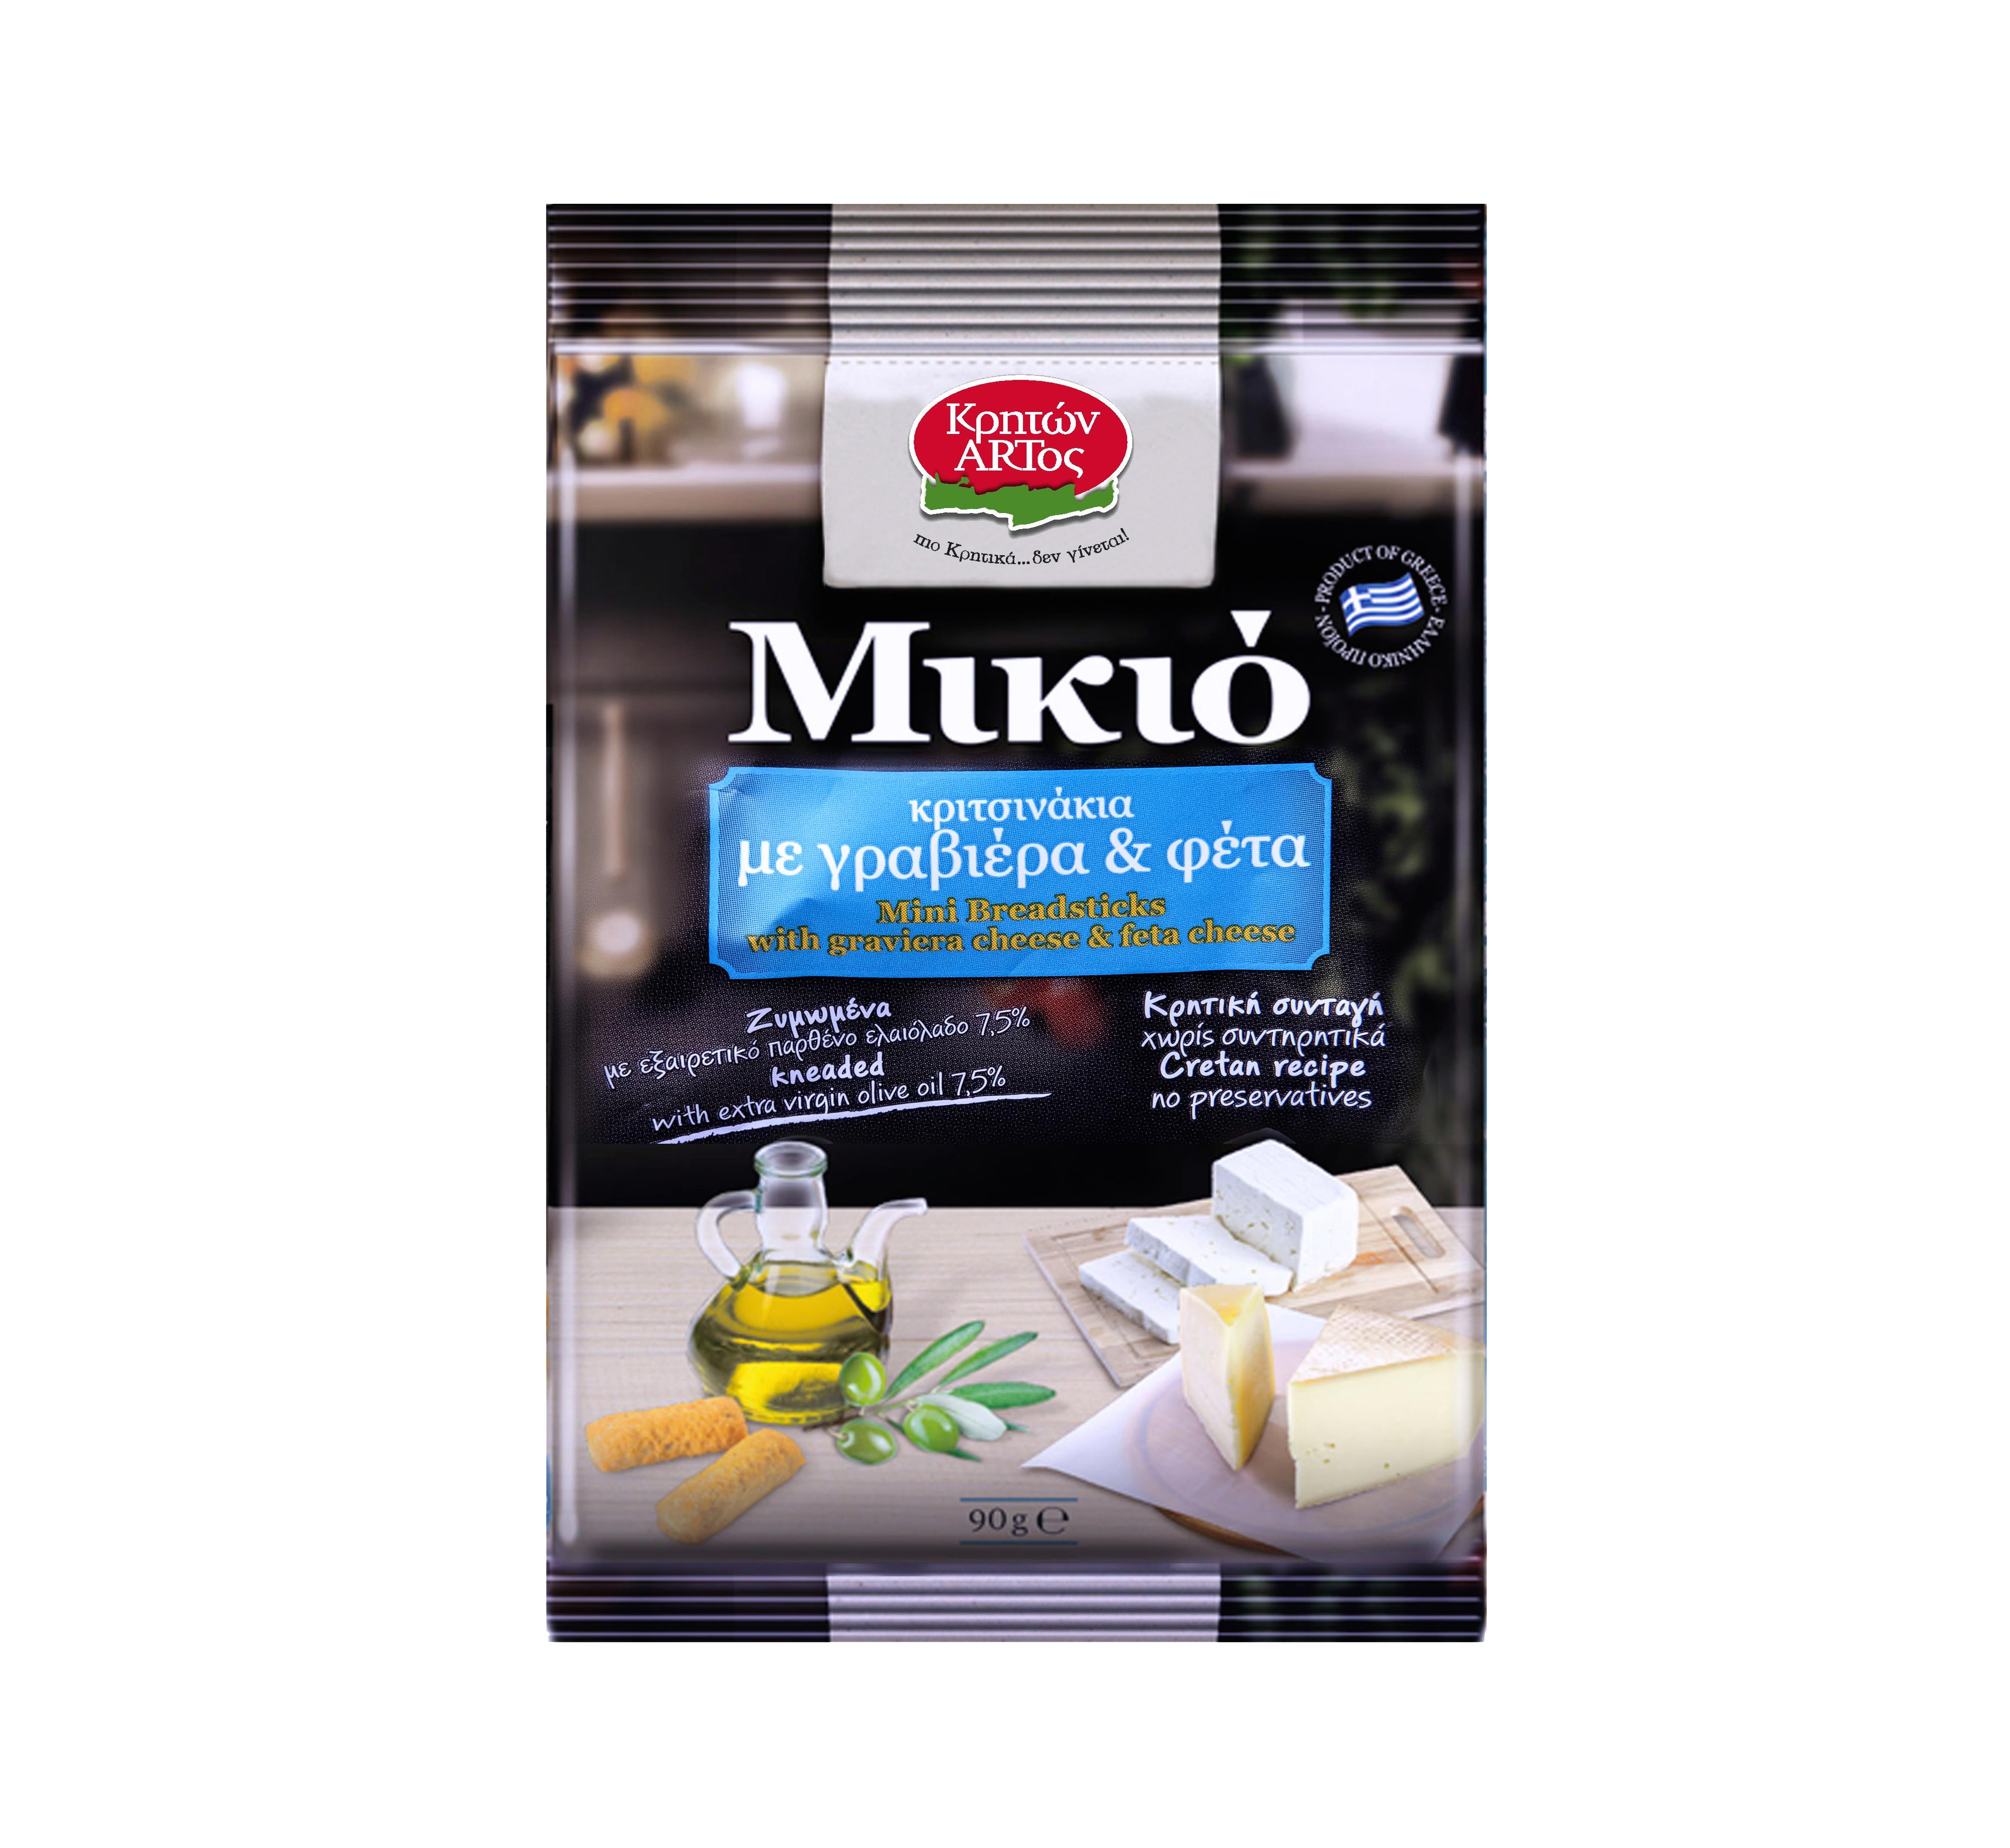 MIKIO Mini breadsticks with graviera cheese & feta cheese